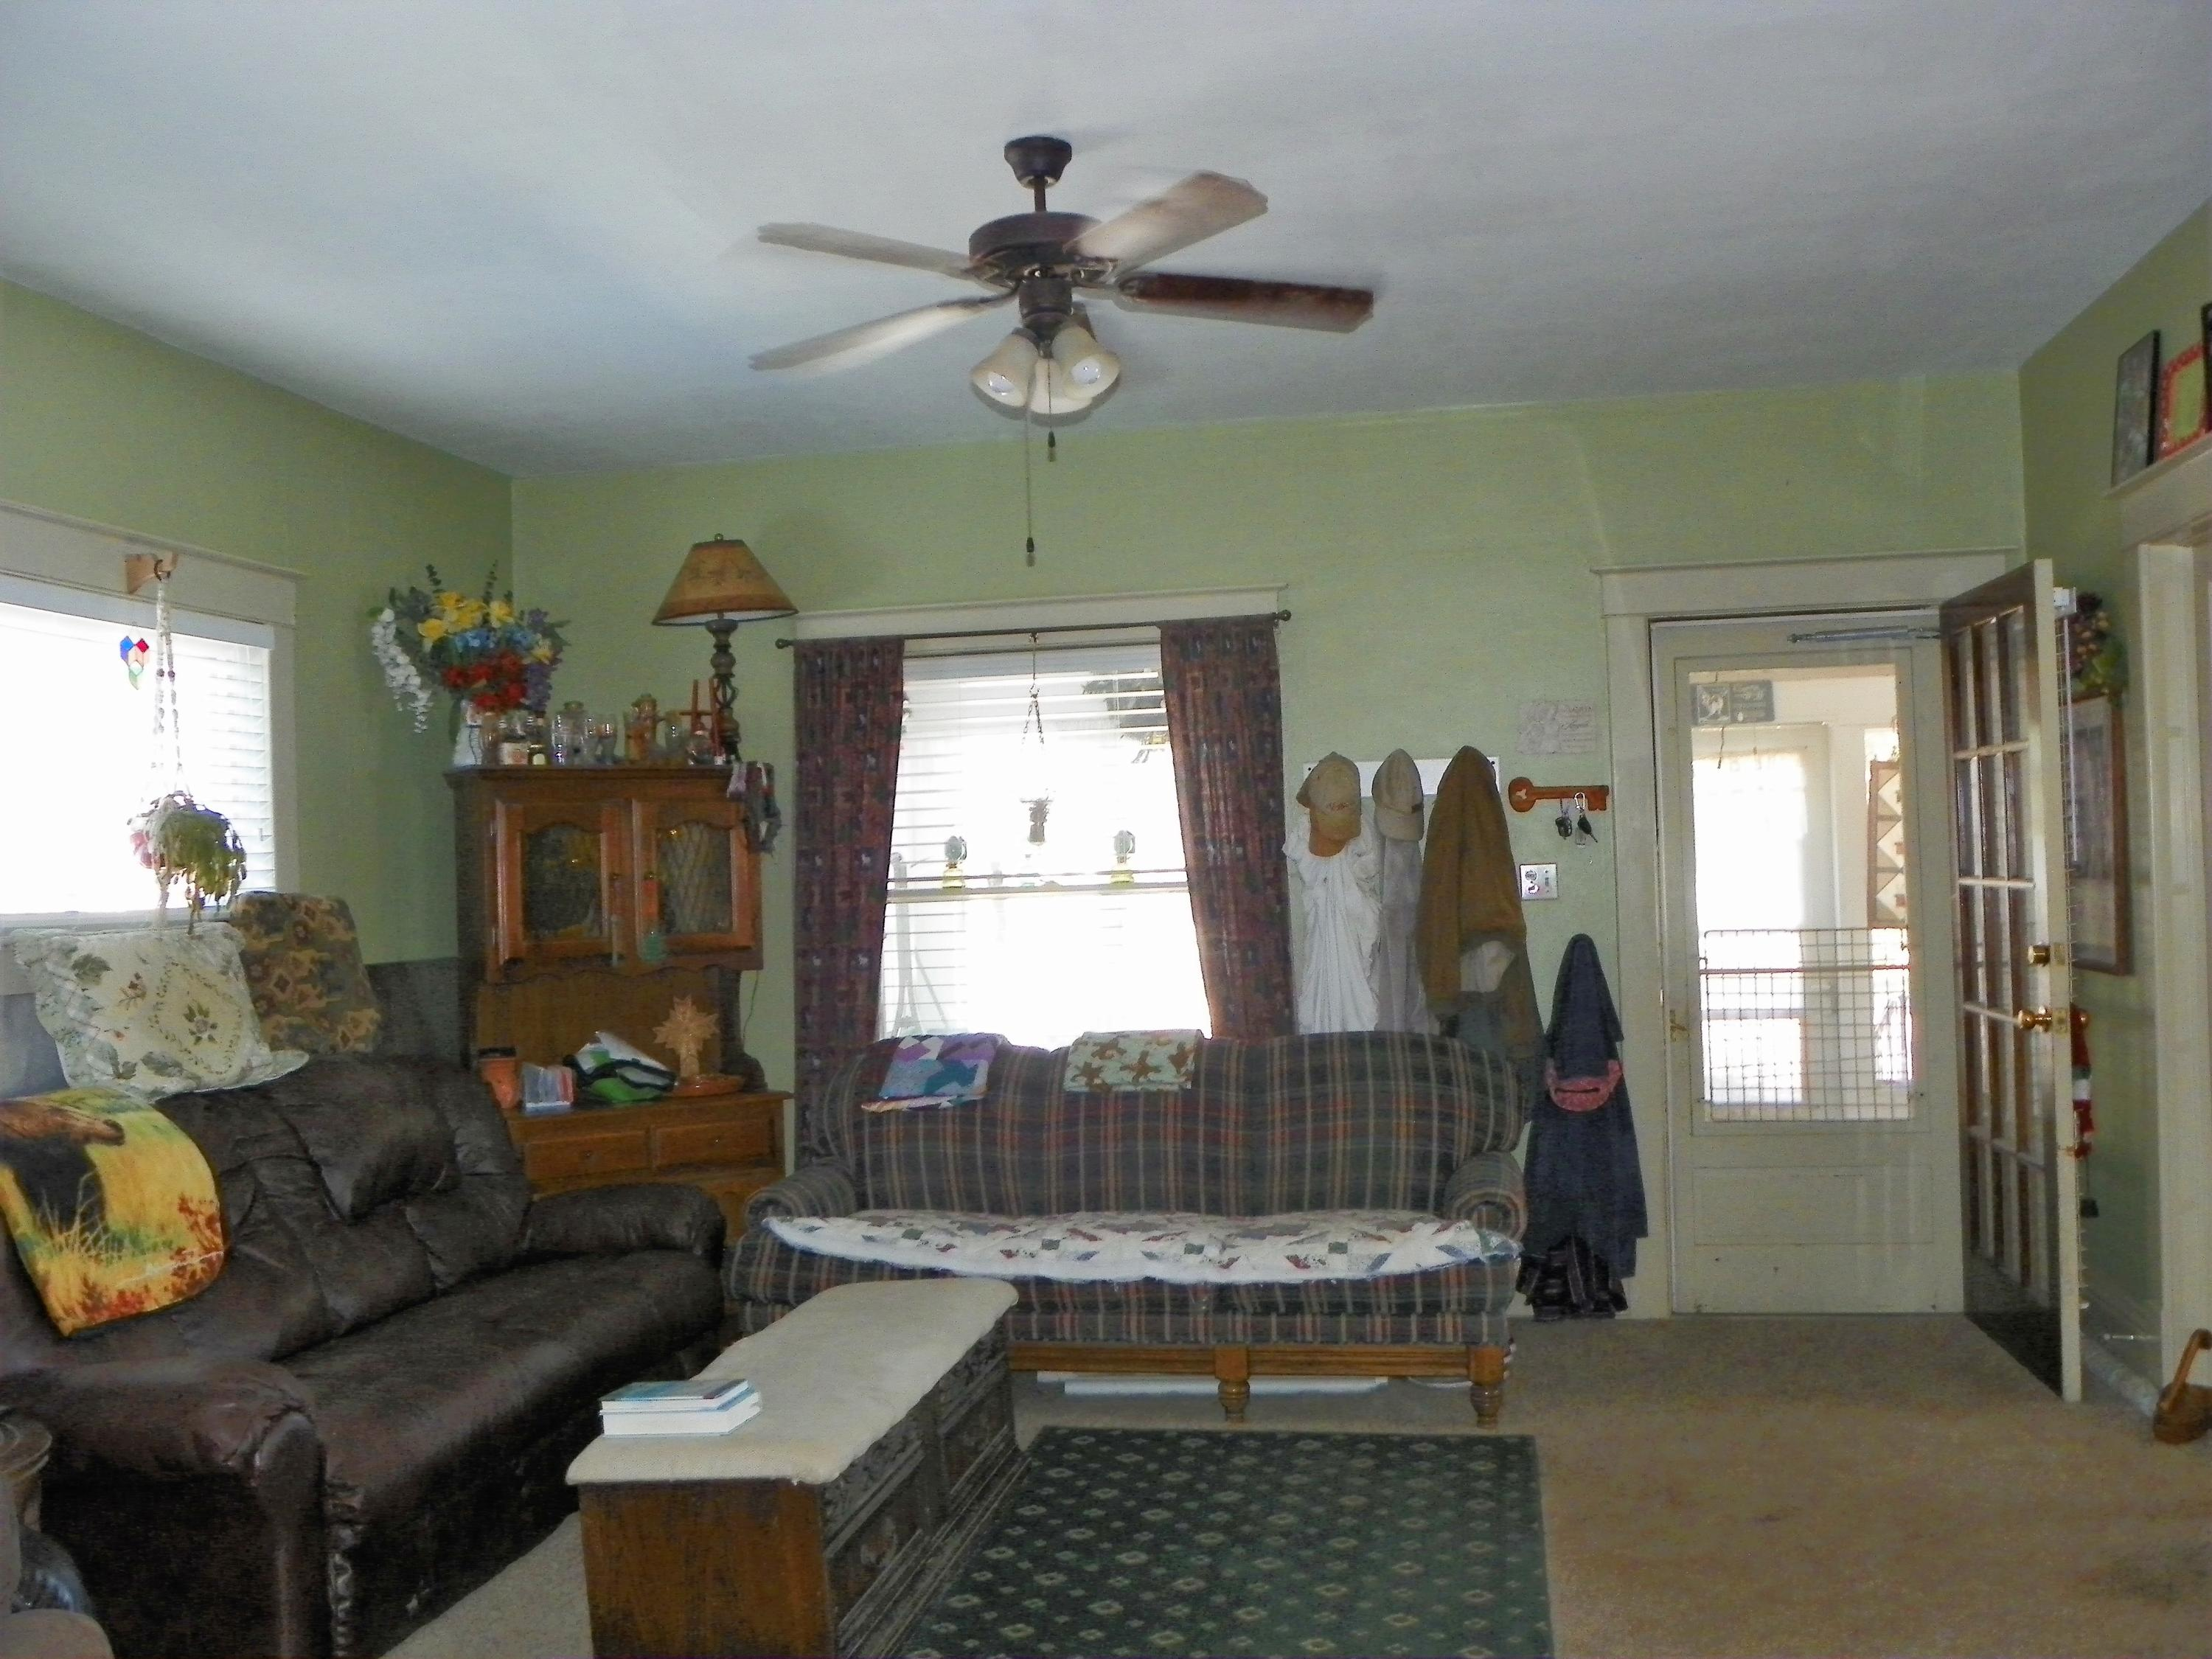 360 Smith Street, Sheridan, Wyoming 82801, 2 Bedrooms Bedrooms, ,2 BathroomsBathrooms,Residential,For Sale,Smith,18-1002